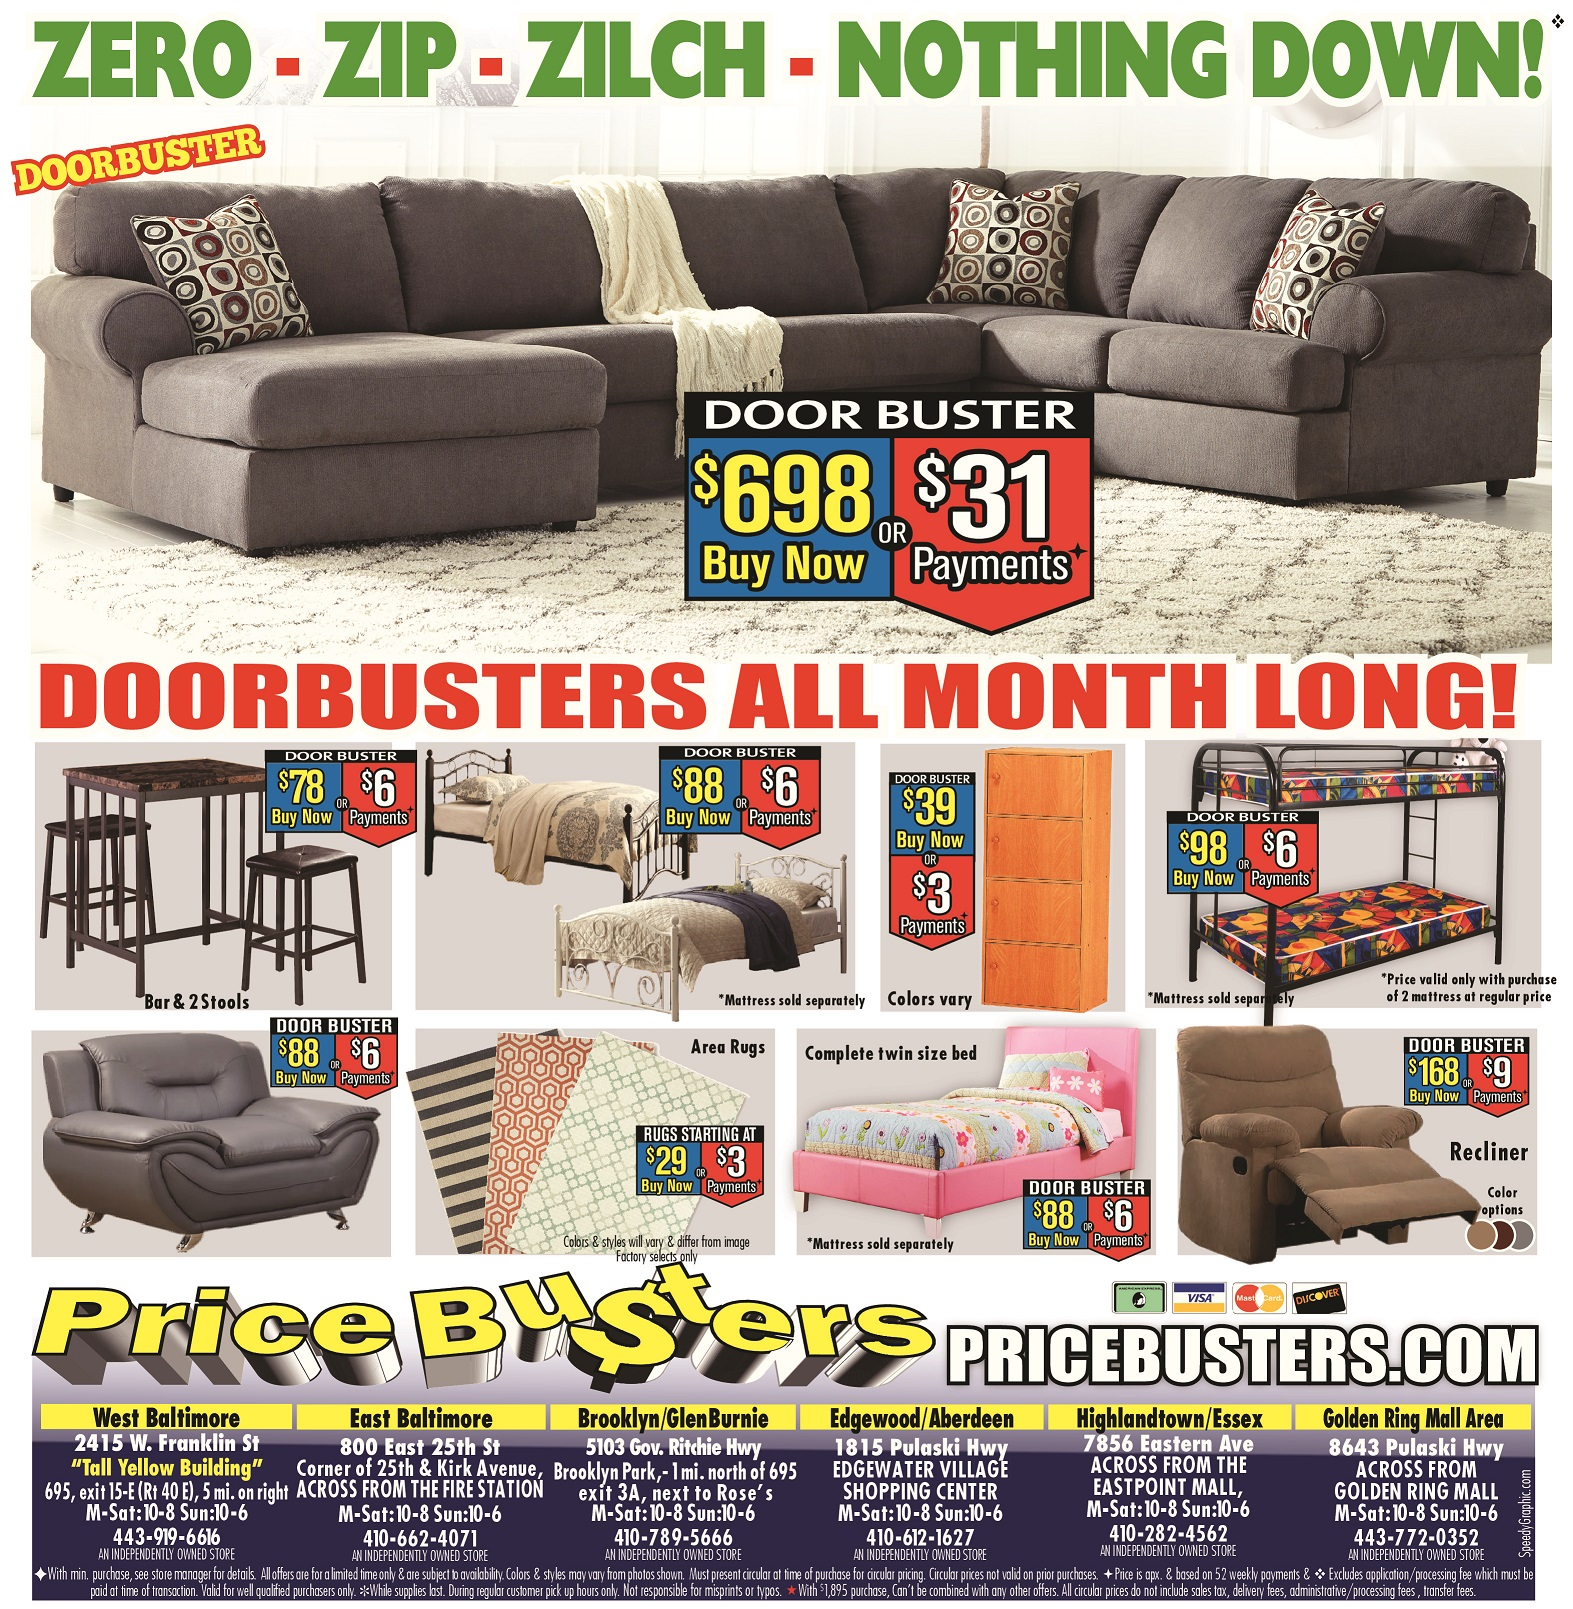 Price Busters Discount Furniture In Rosedale Md 443 772 0